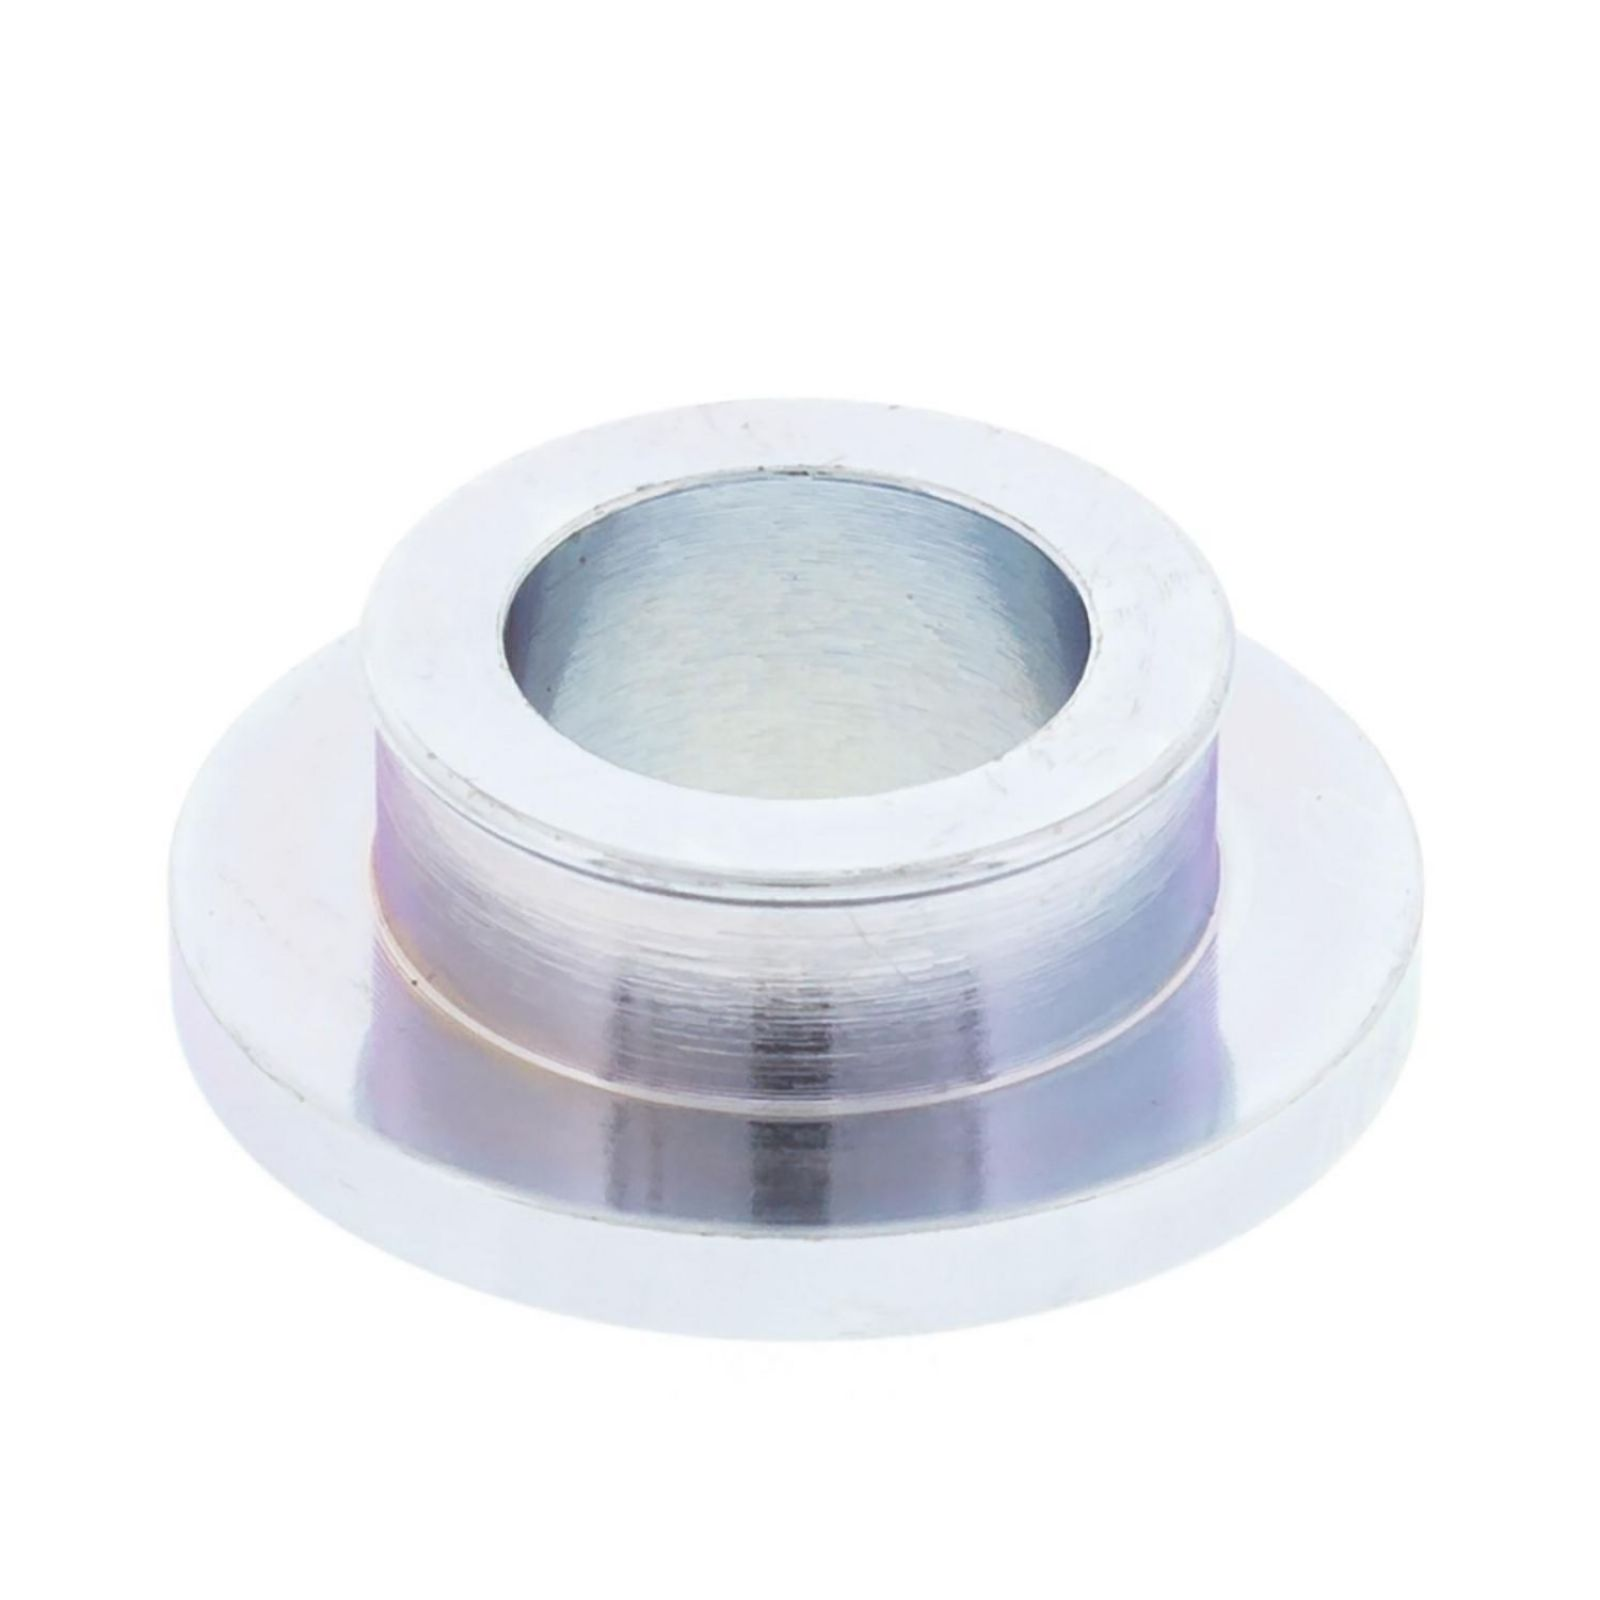 WRP Rear Wheel Spacer Kits - WRP111010 image